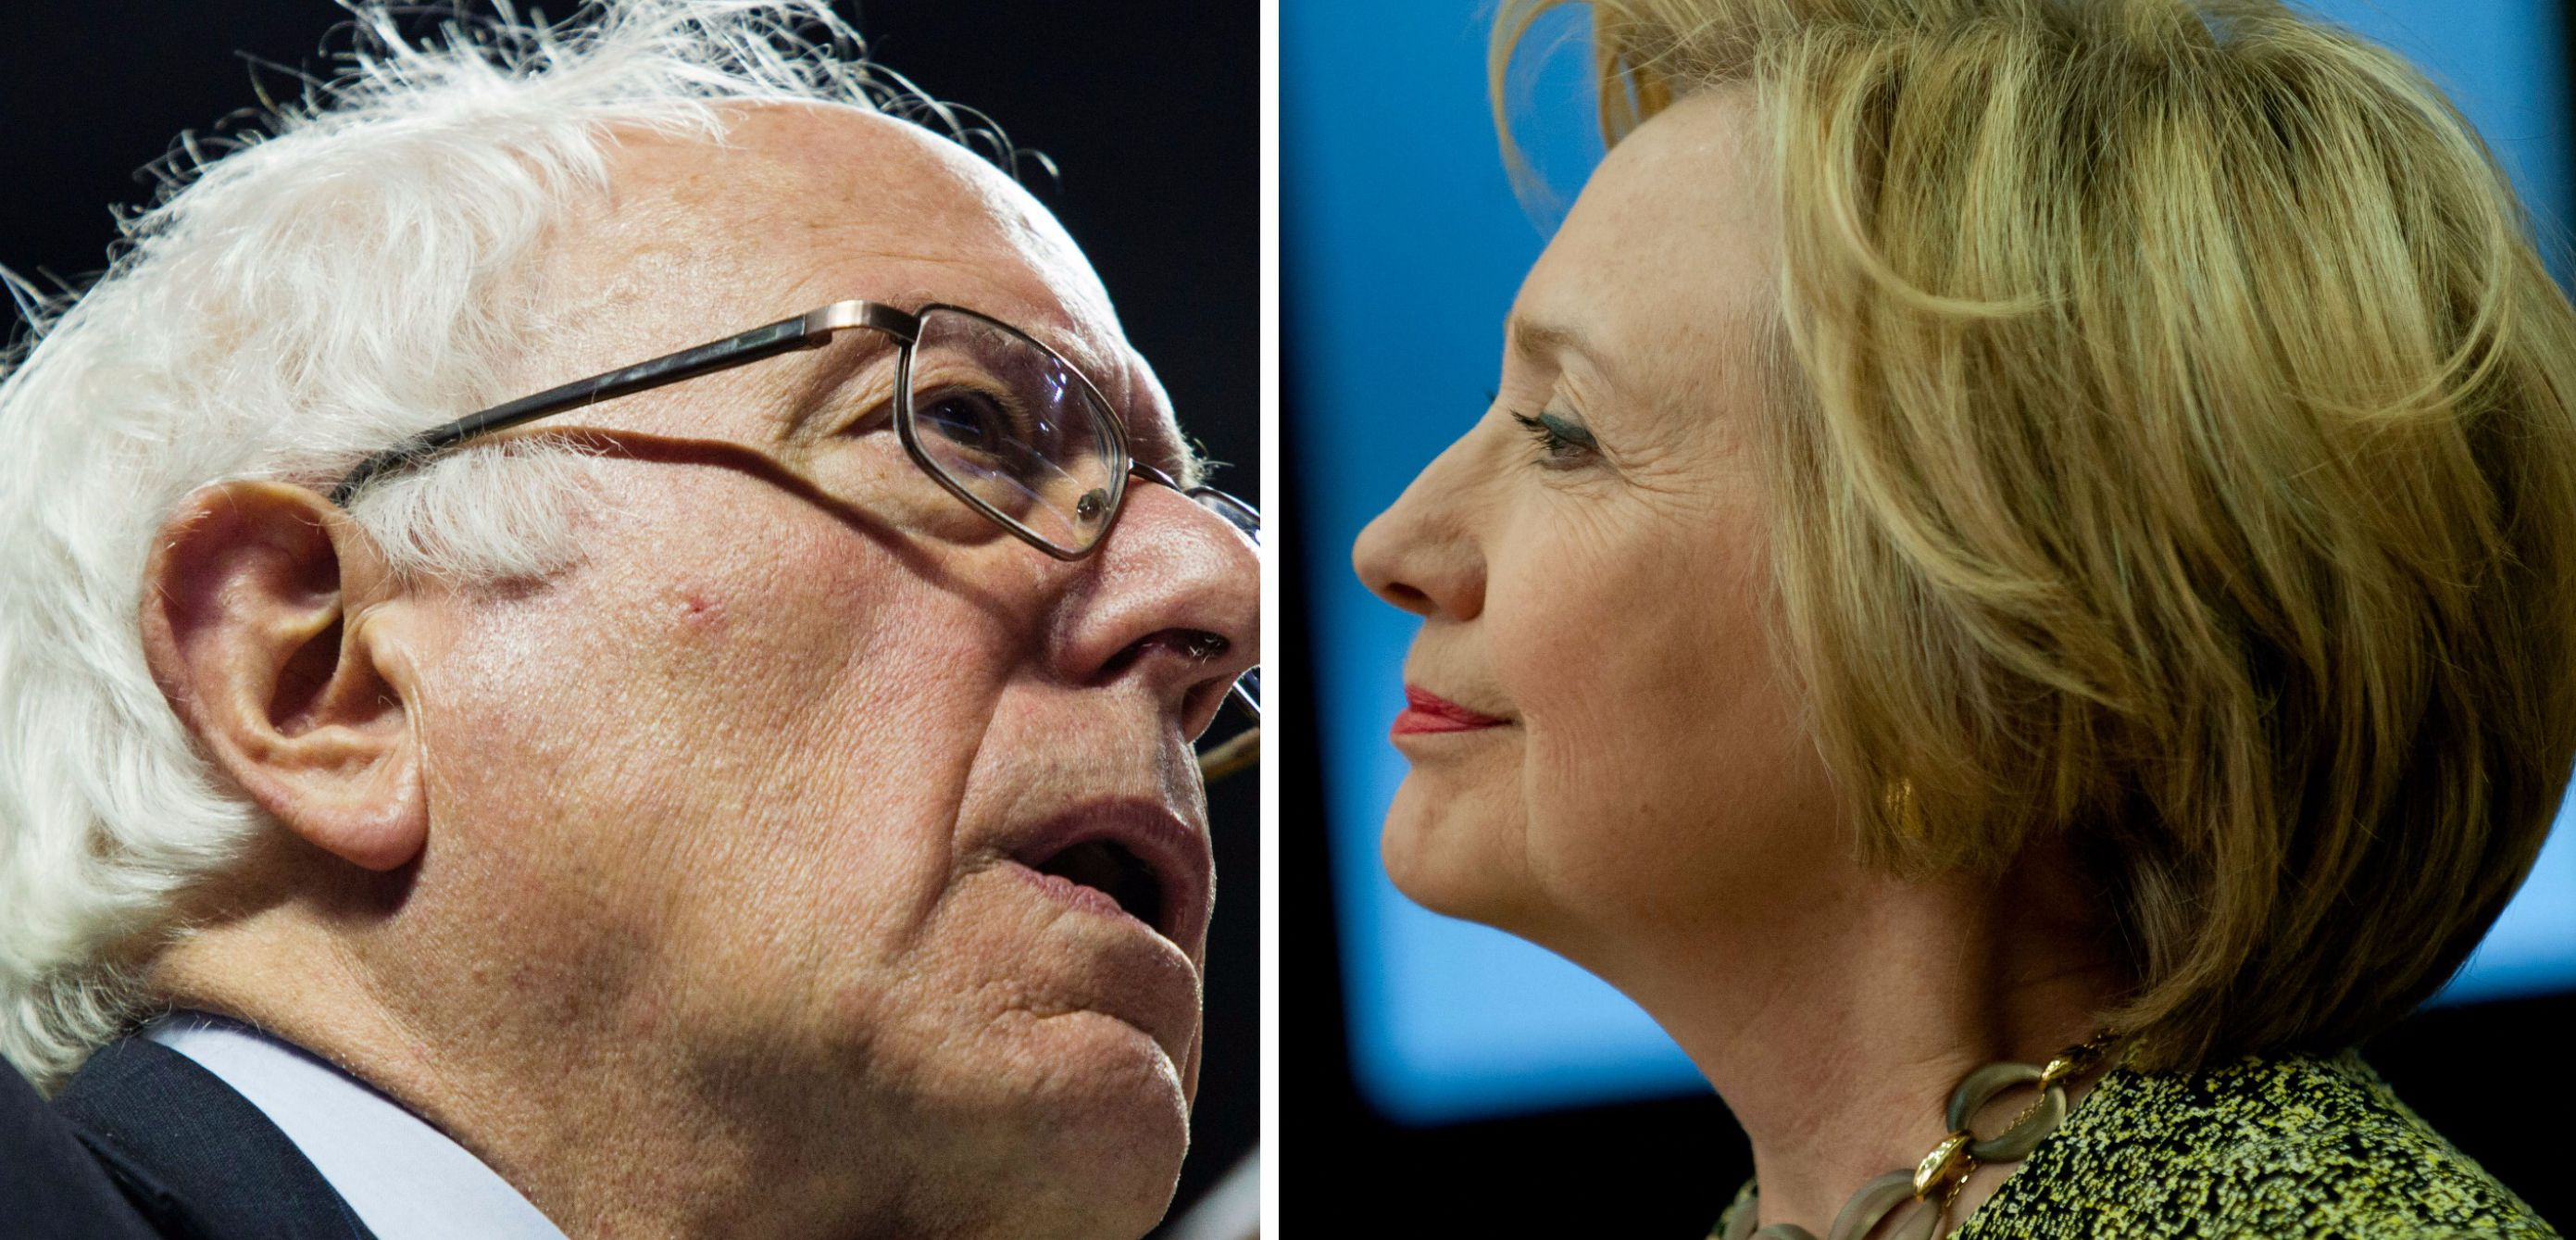 Clinton Sanders Faceoff.